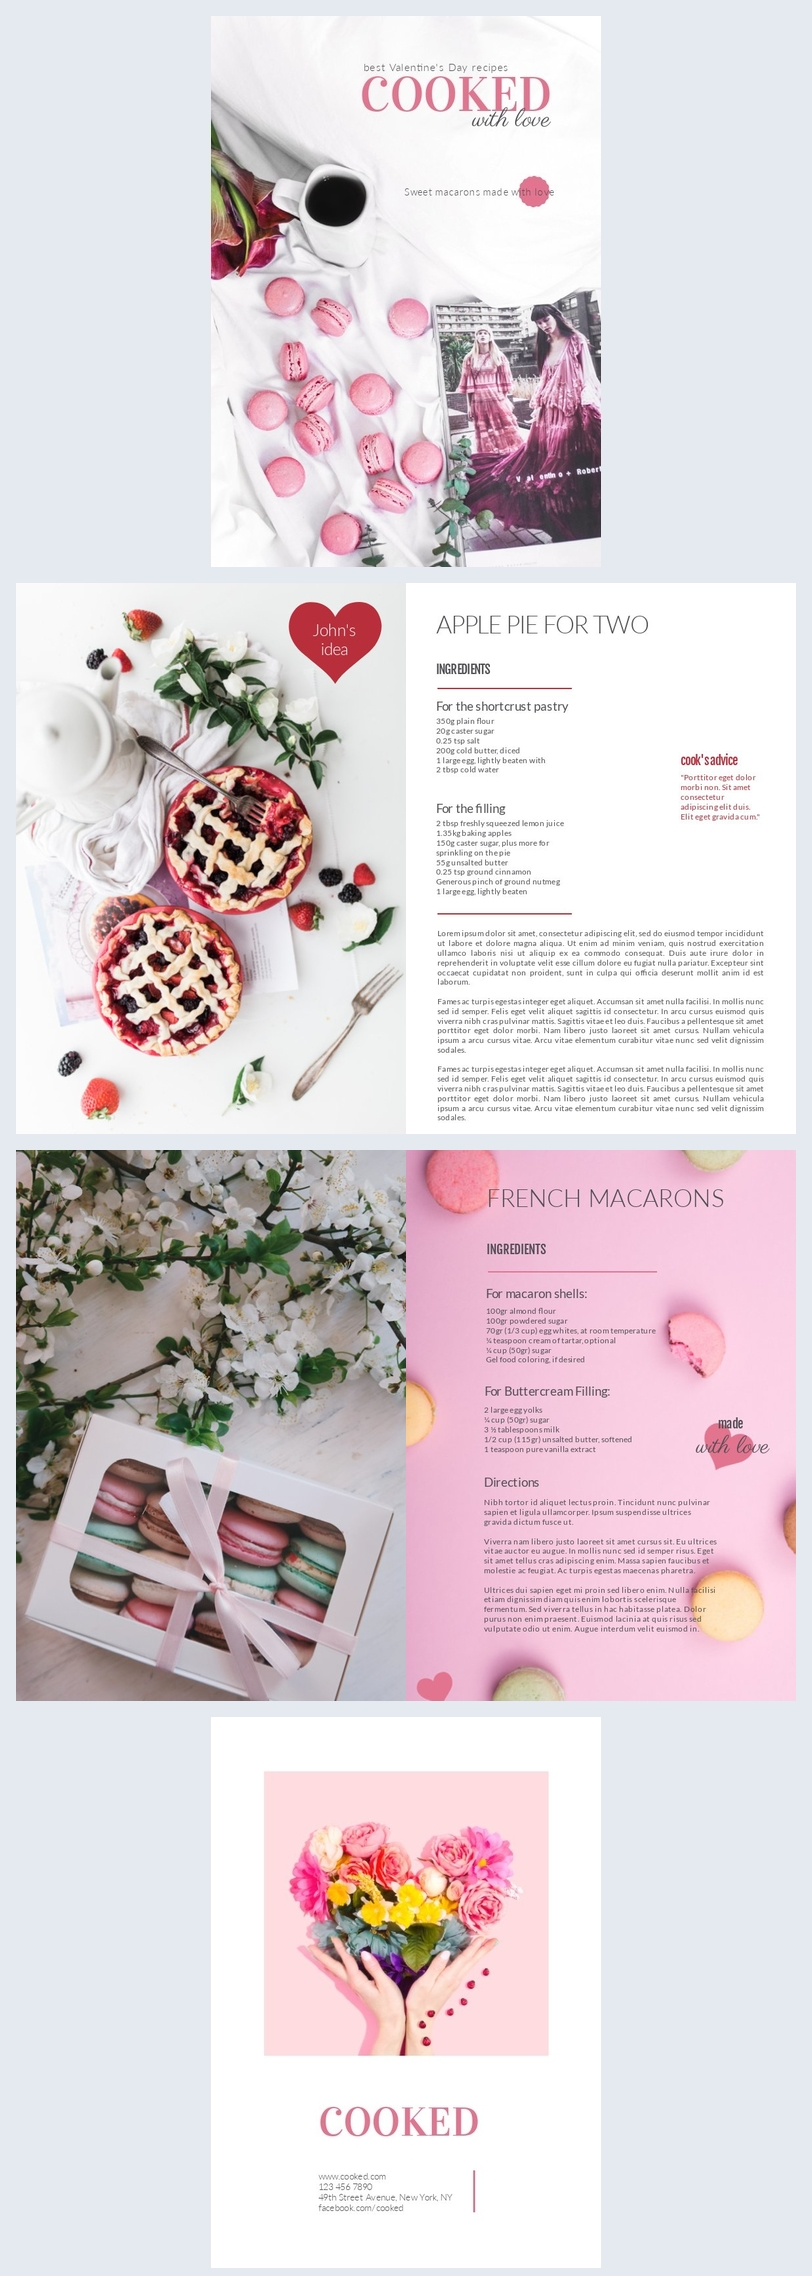 Desserts Recipe Book Template